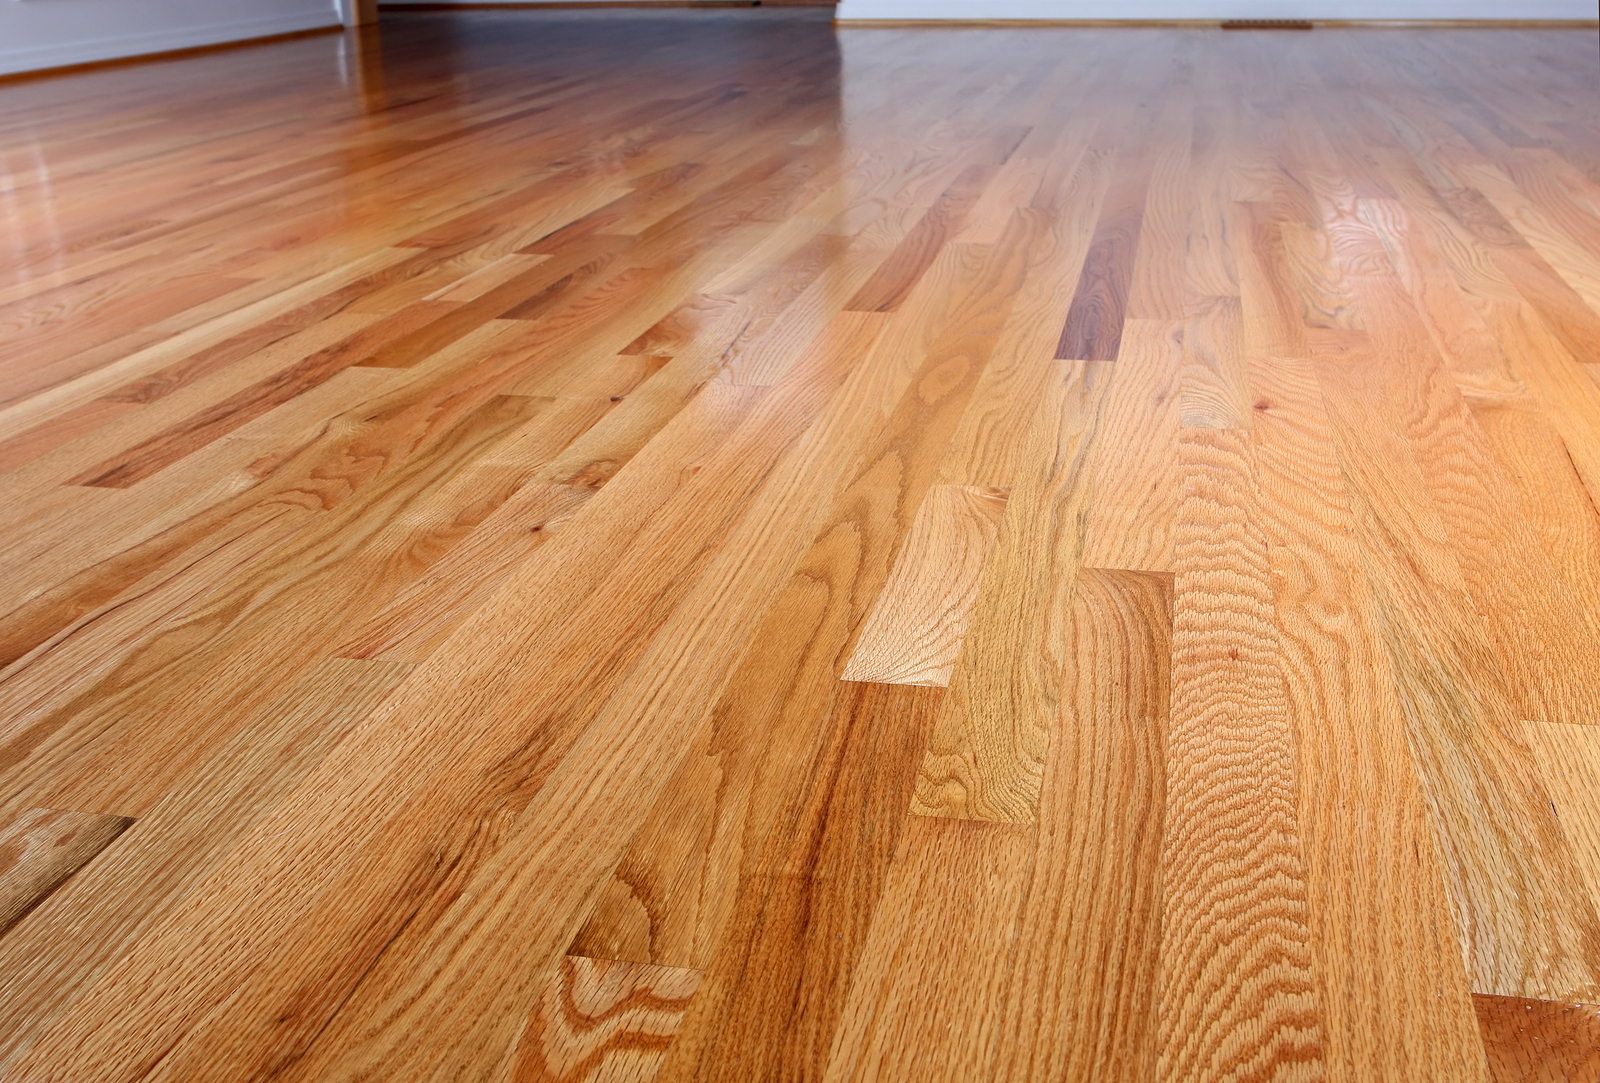 What Are The Most Common Floor Finishes Hardwood